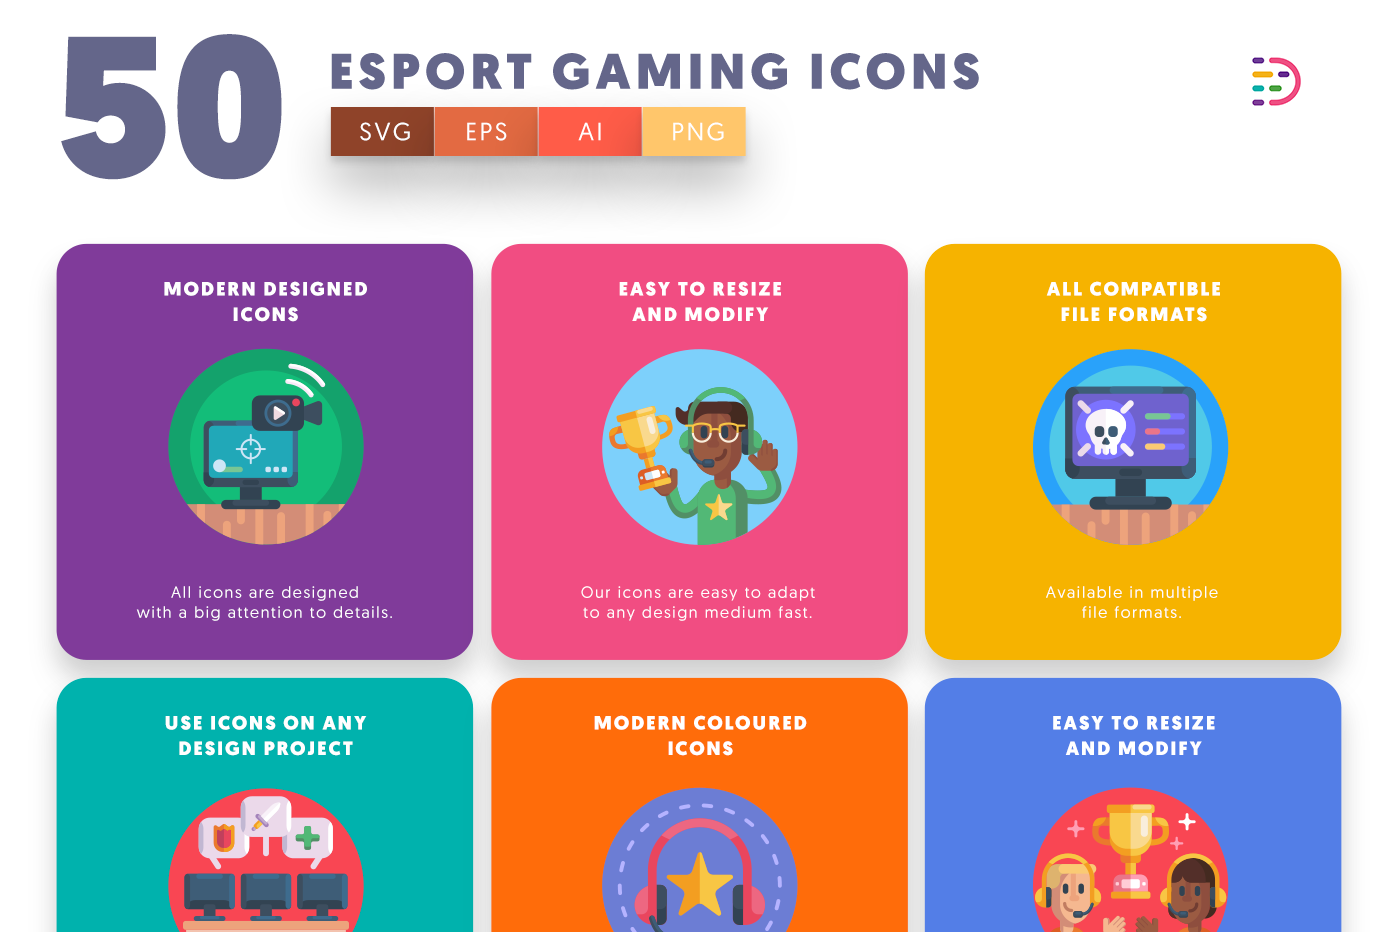 50 Esport Gaming Icons with colored backgrounds